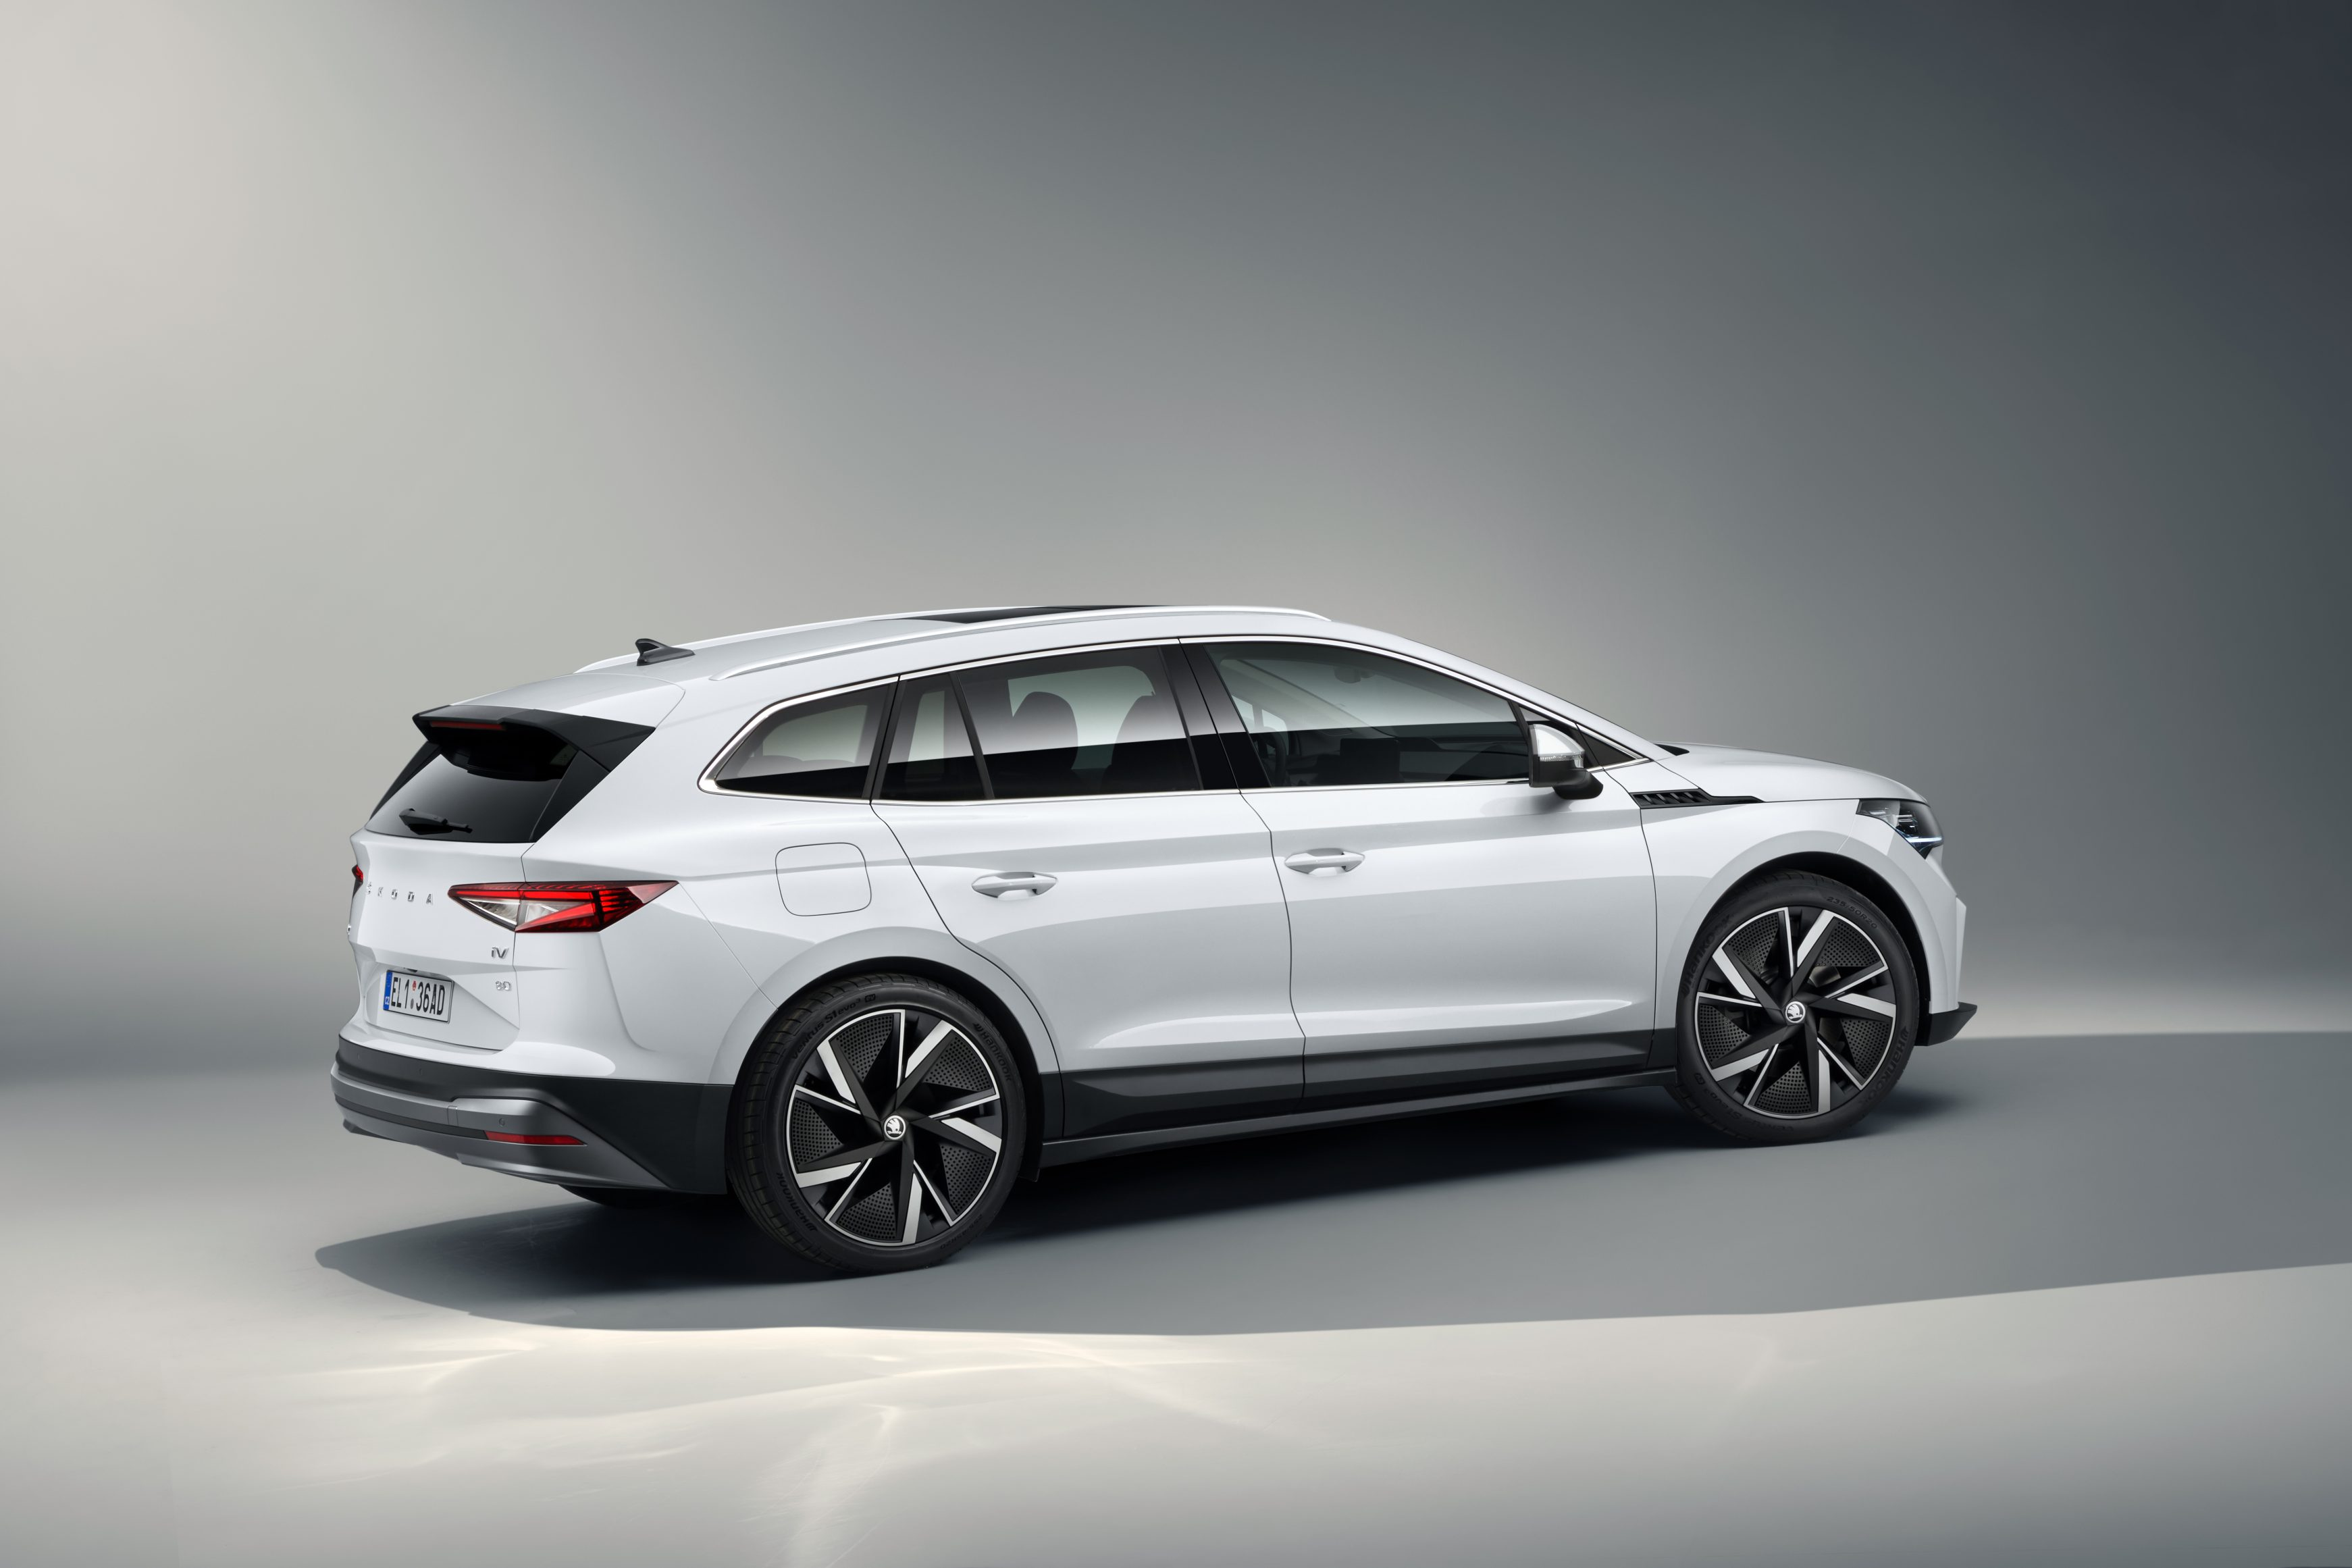 The Skoda Enyaq iV has magnificent body lines and a practical, sporty shape